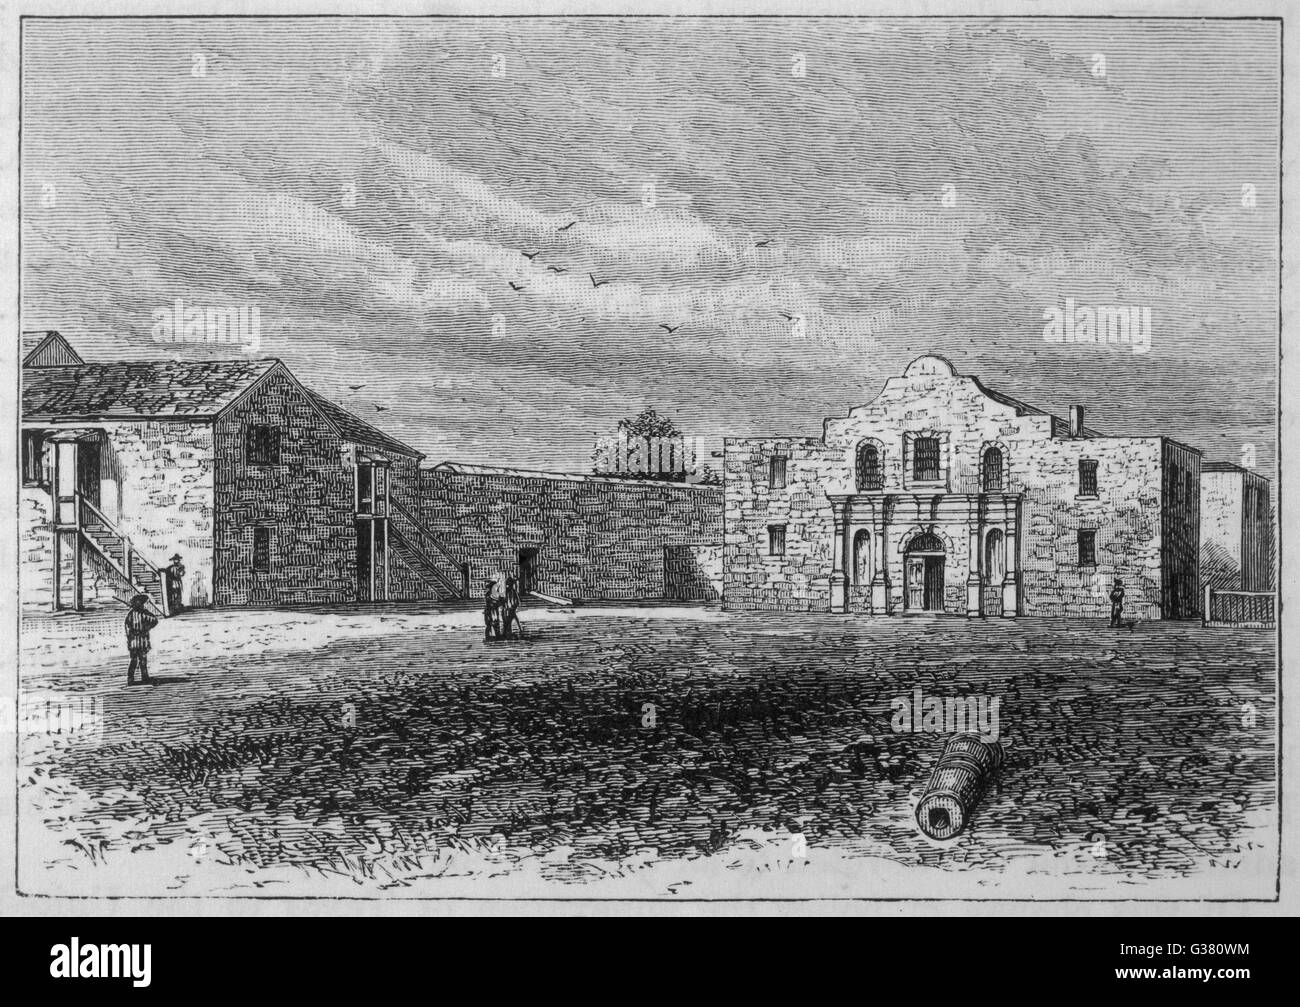 The exterior of the Alamo         Date: 1836 - Stock Image